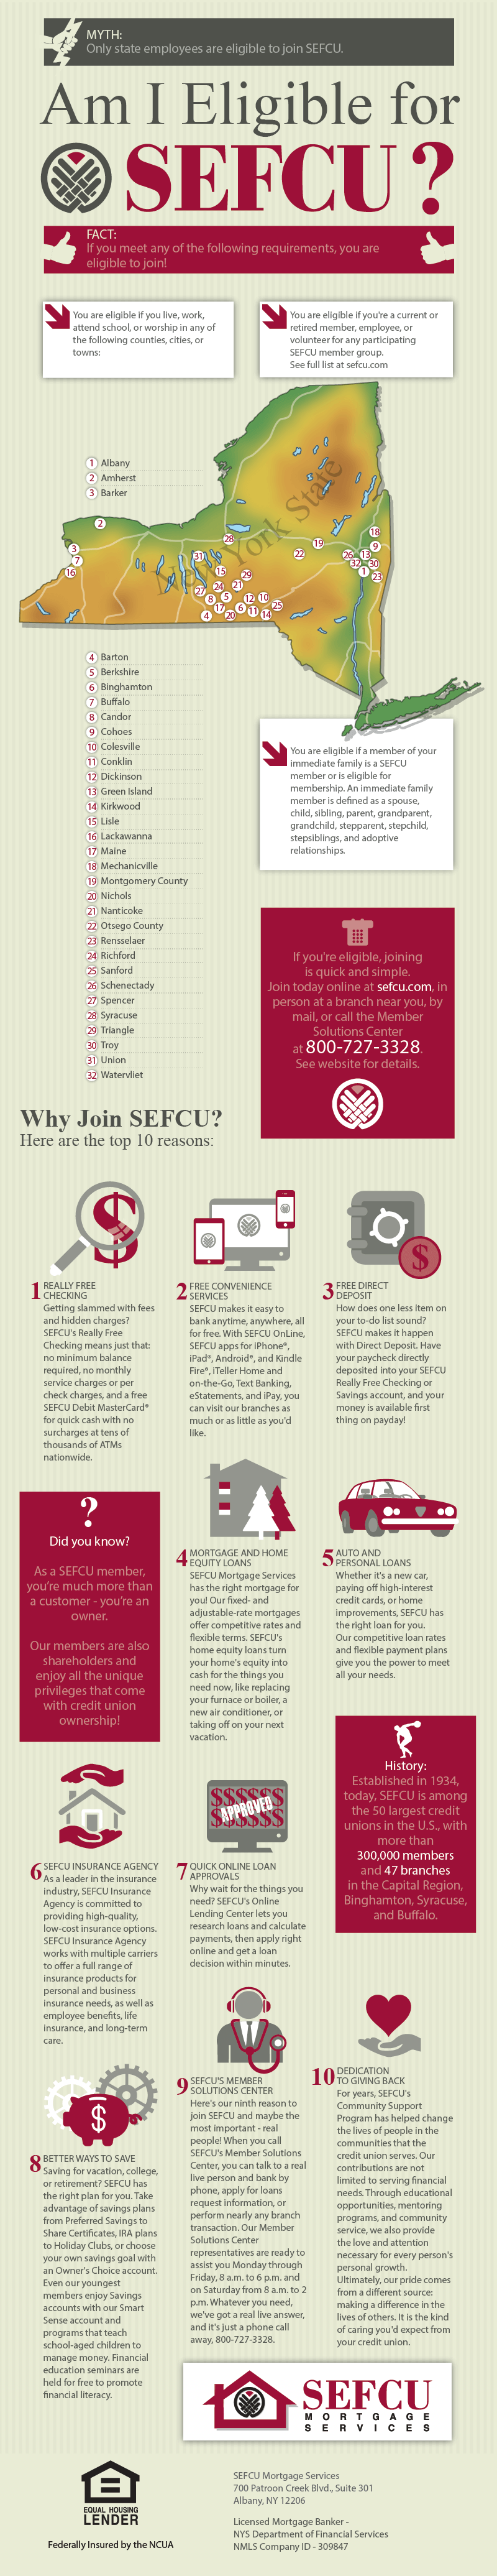 Are You Eligible For Sefcu Infographic Saving Money Chart Infographic Money Chart